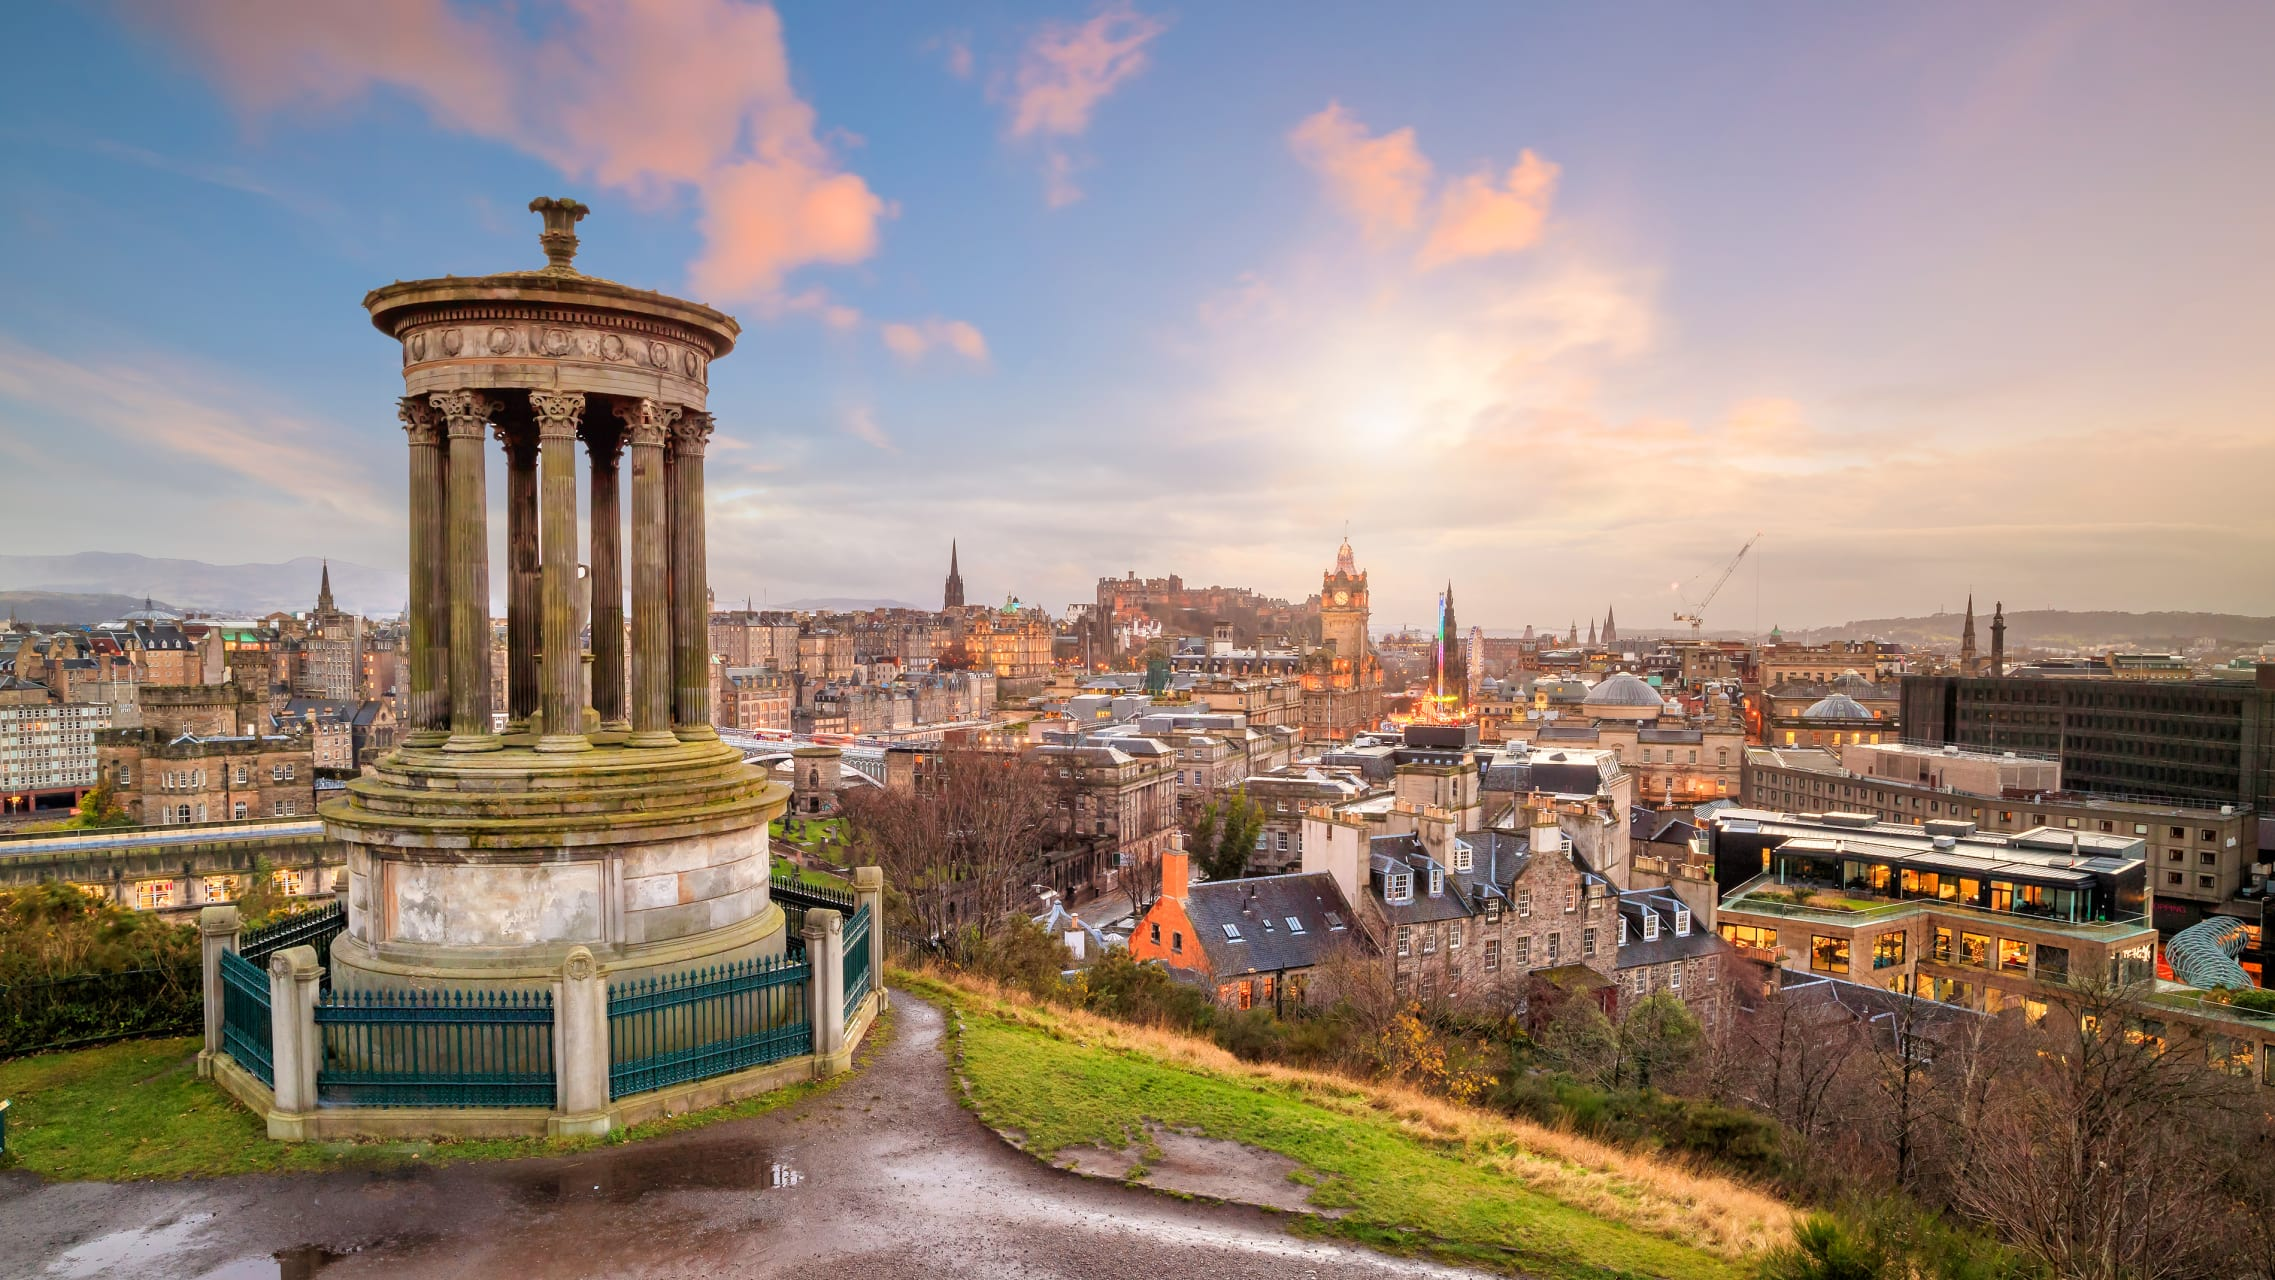 Edinburgh - Calton Hill at Sunset with Invisible Cities and Special Guest Charley London